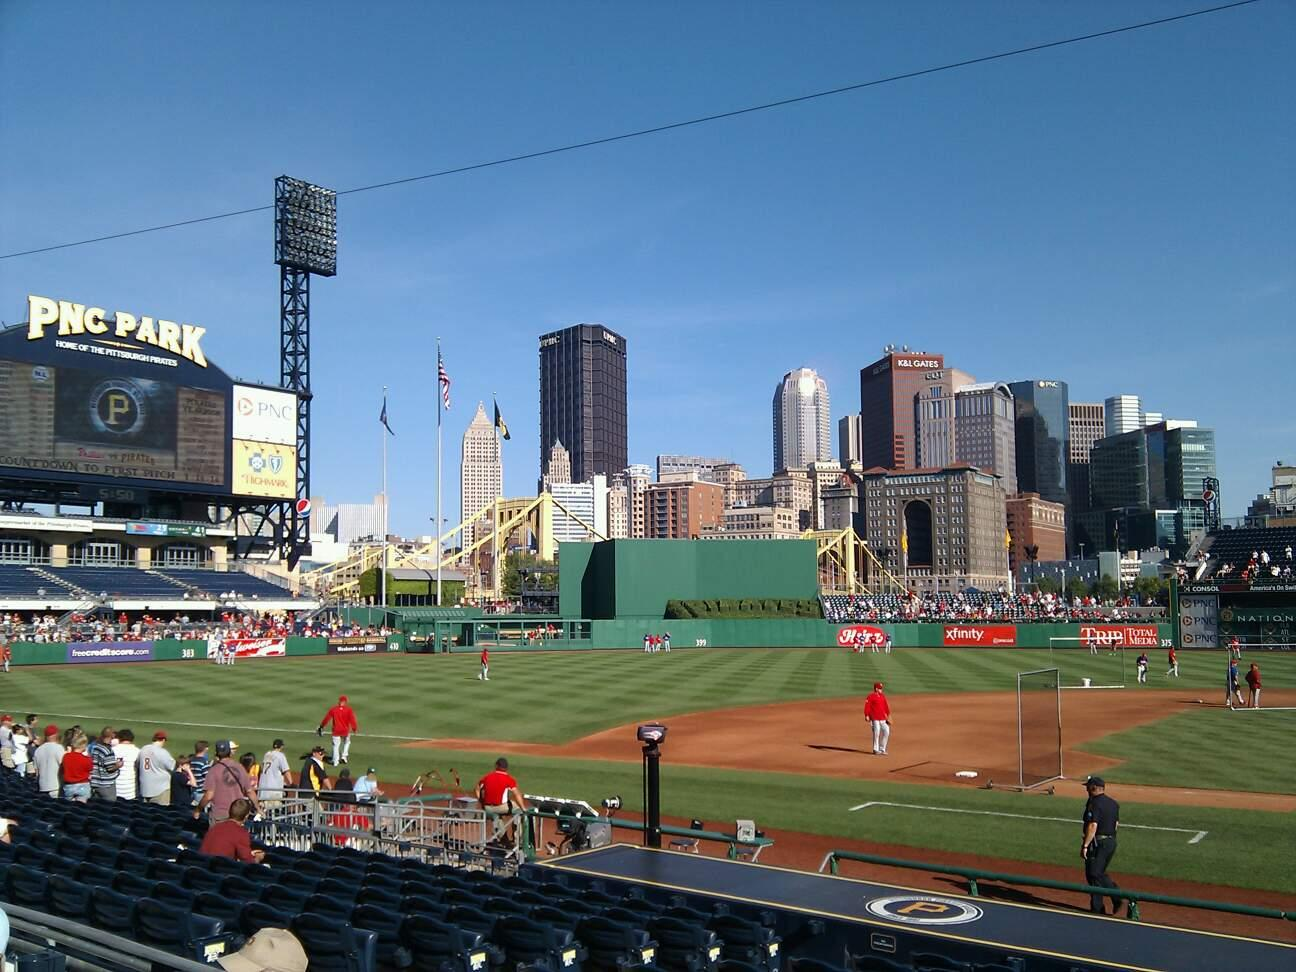 PNC Park Section 121 Row c Seat 15